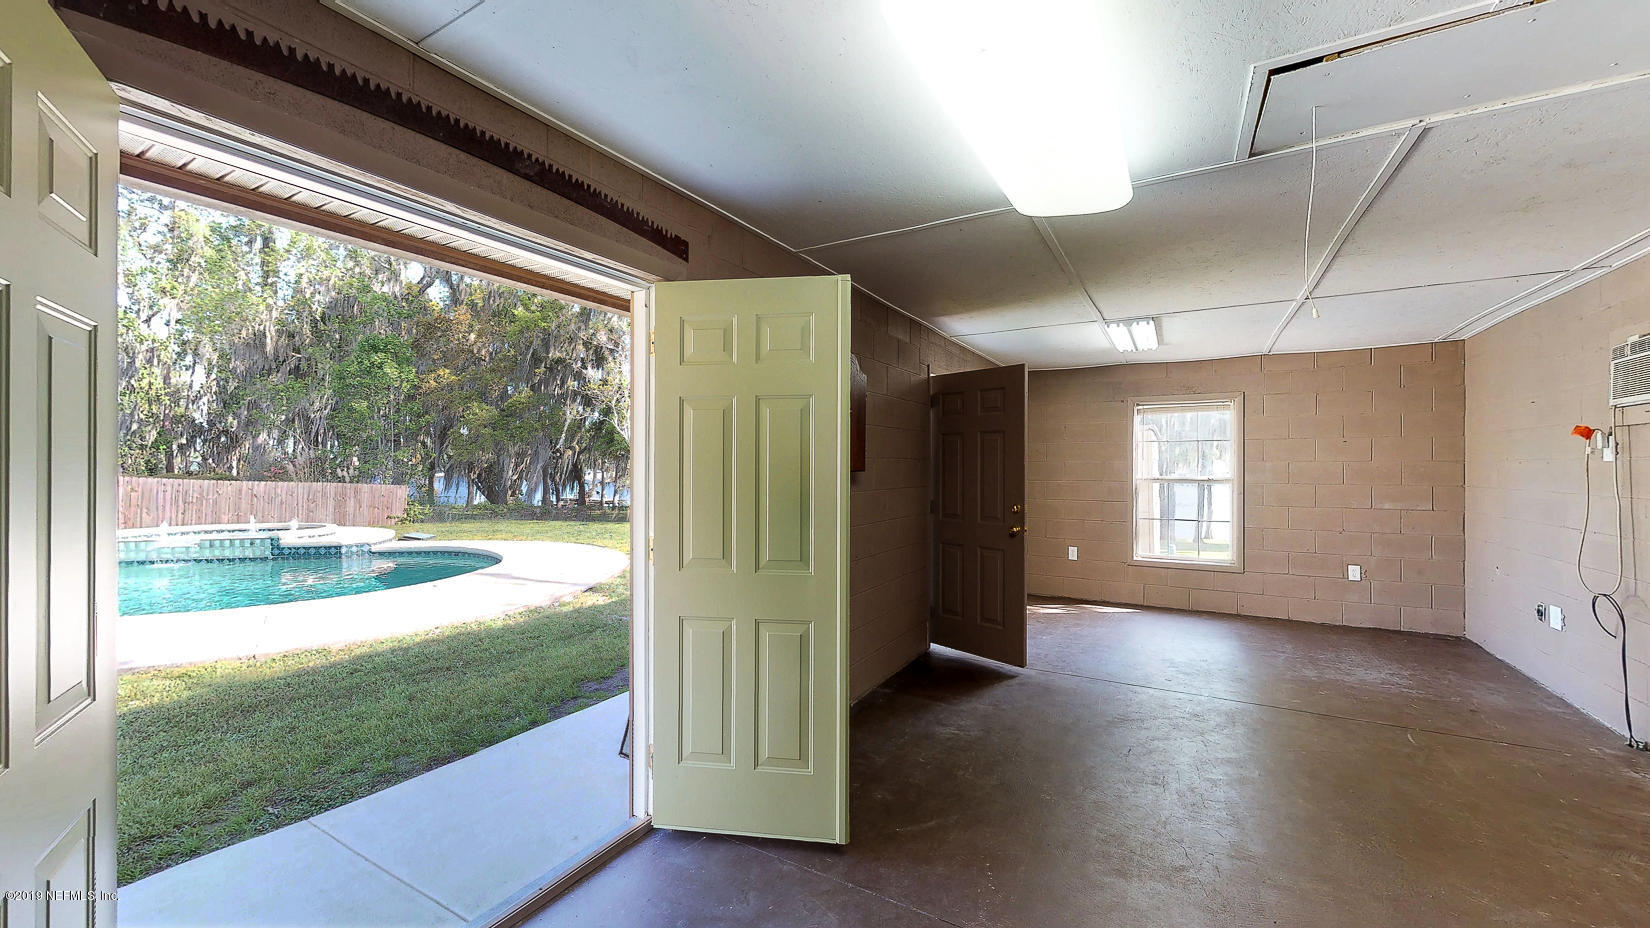 8 HARMONY HALL, MIDDLEBURG, FLORIDA 32068, 3 Bedrooms Bedrooms, ,2 BathroomsBathrooms,Residential - single family,For sale,HARMONY HALL,985664